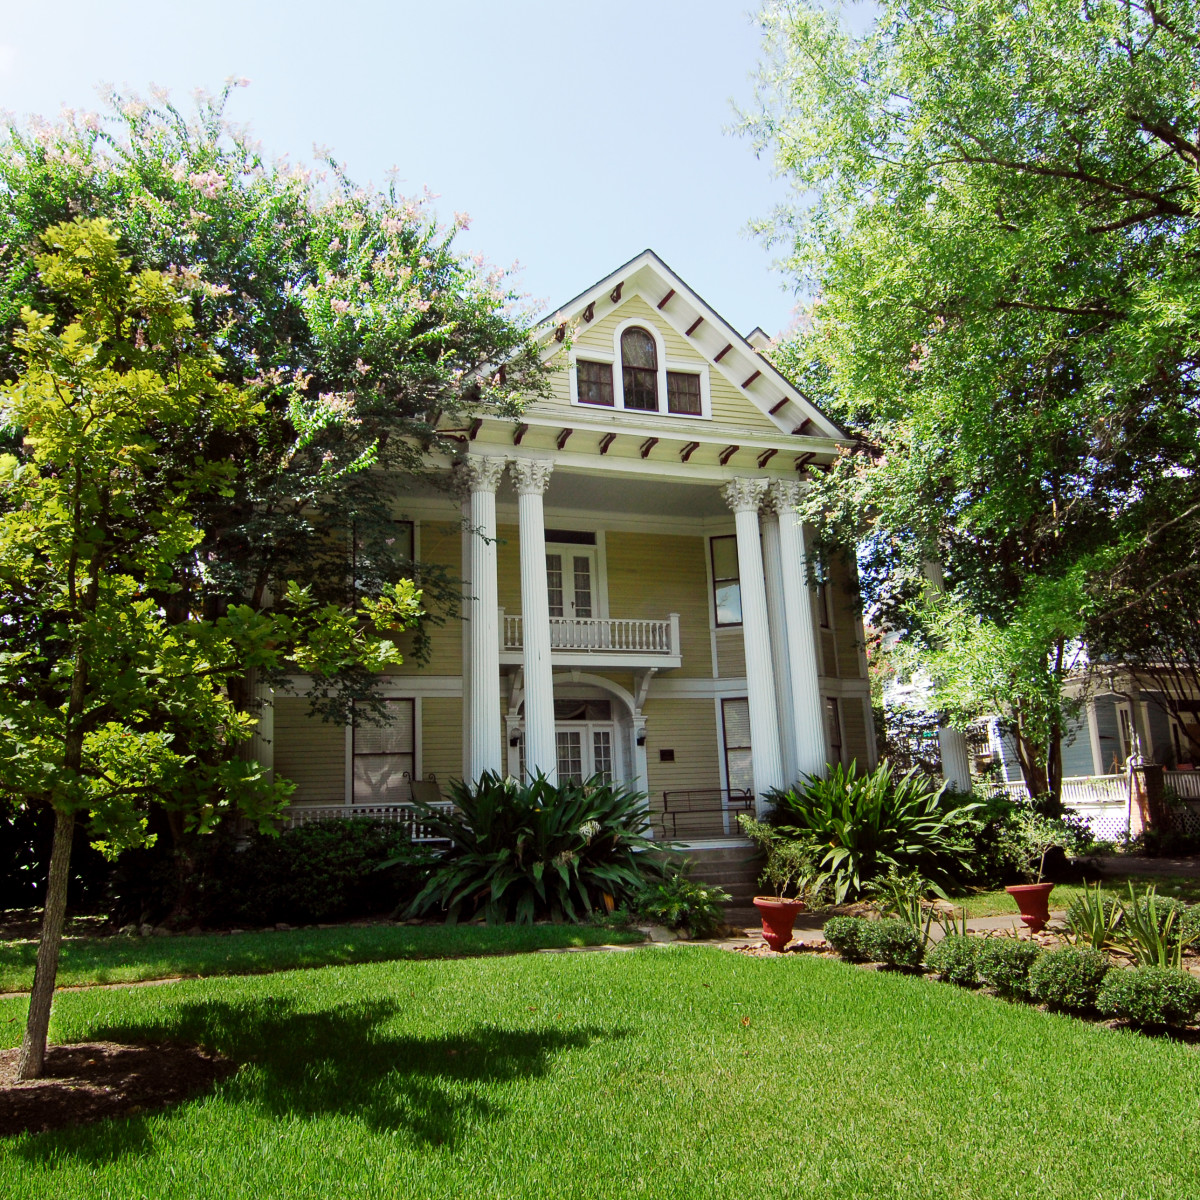 News, Shelby, the Heritage Society, Parker House, Aug. 2015